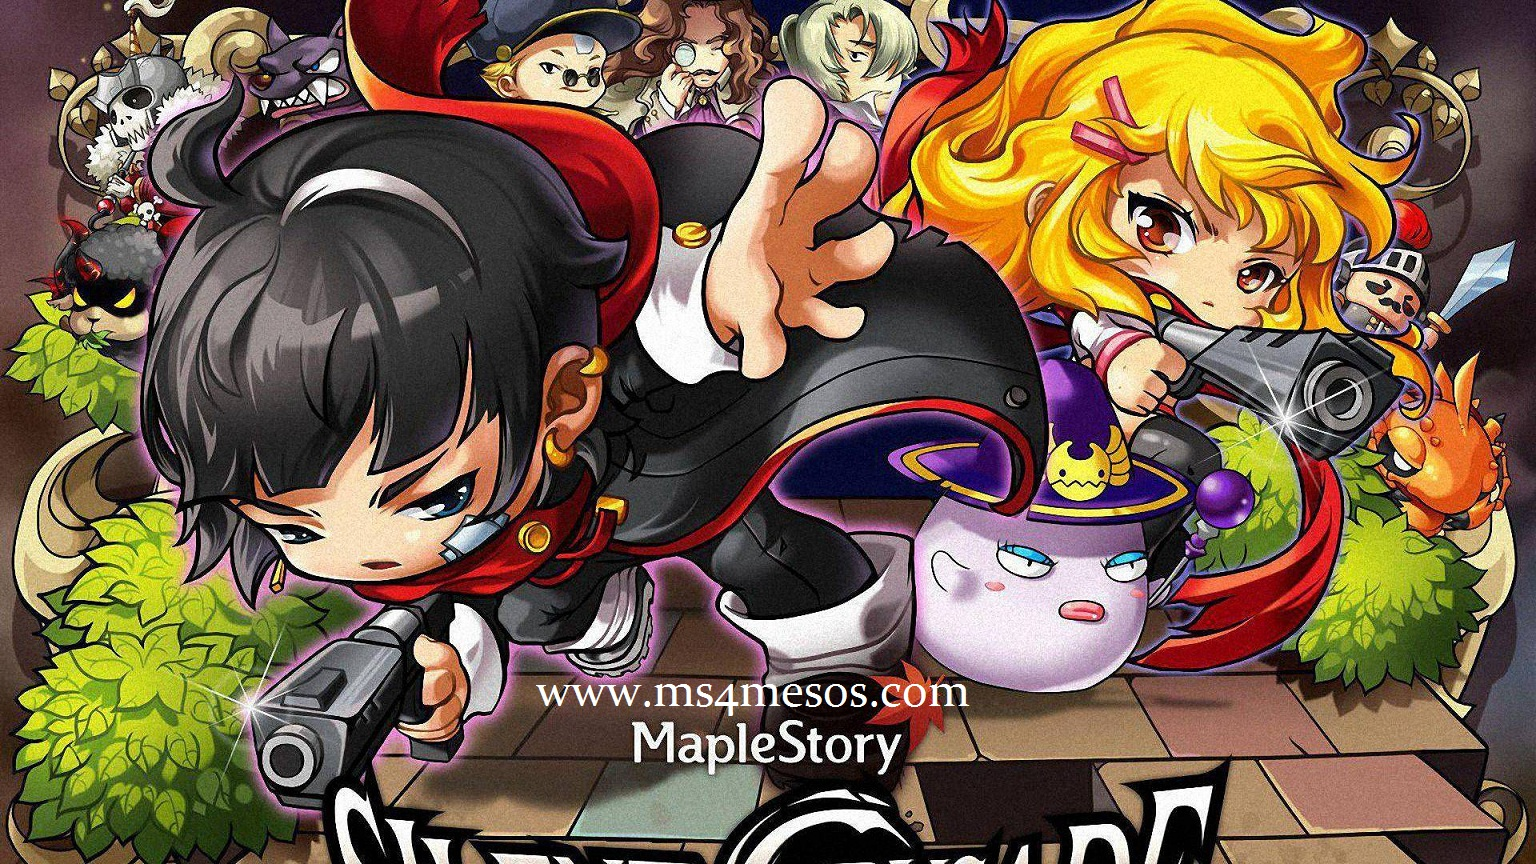 How Do You Celebrate for The 12th Anniversary of MapleStory